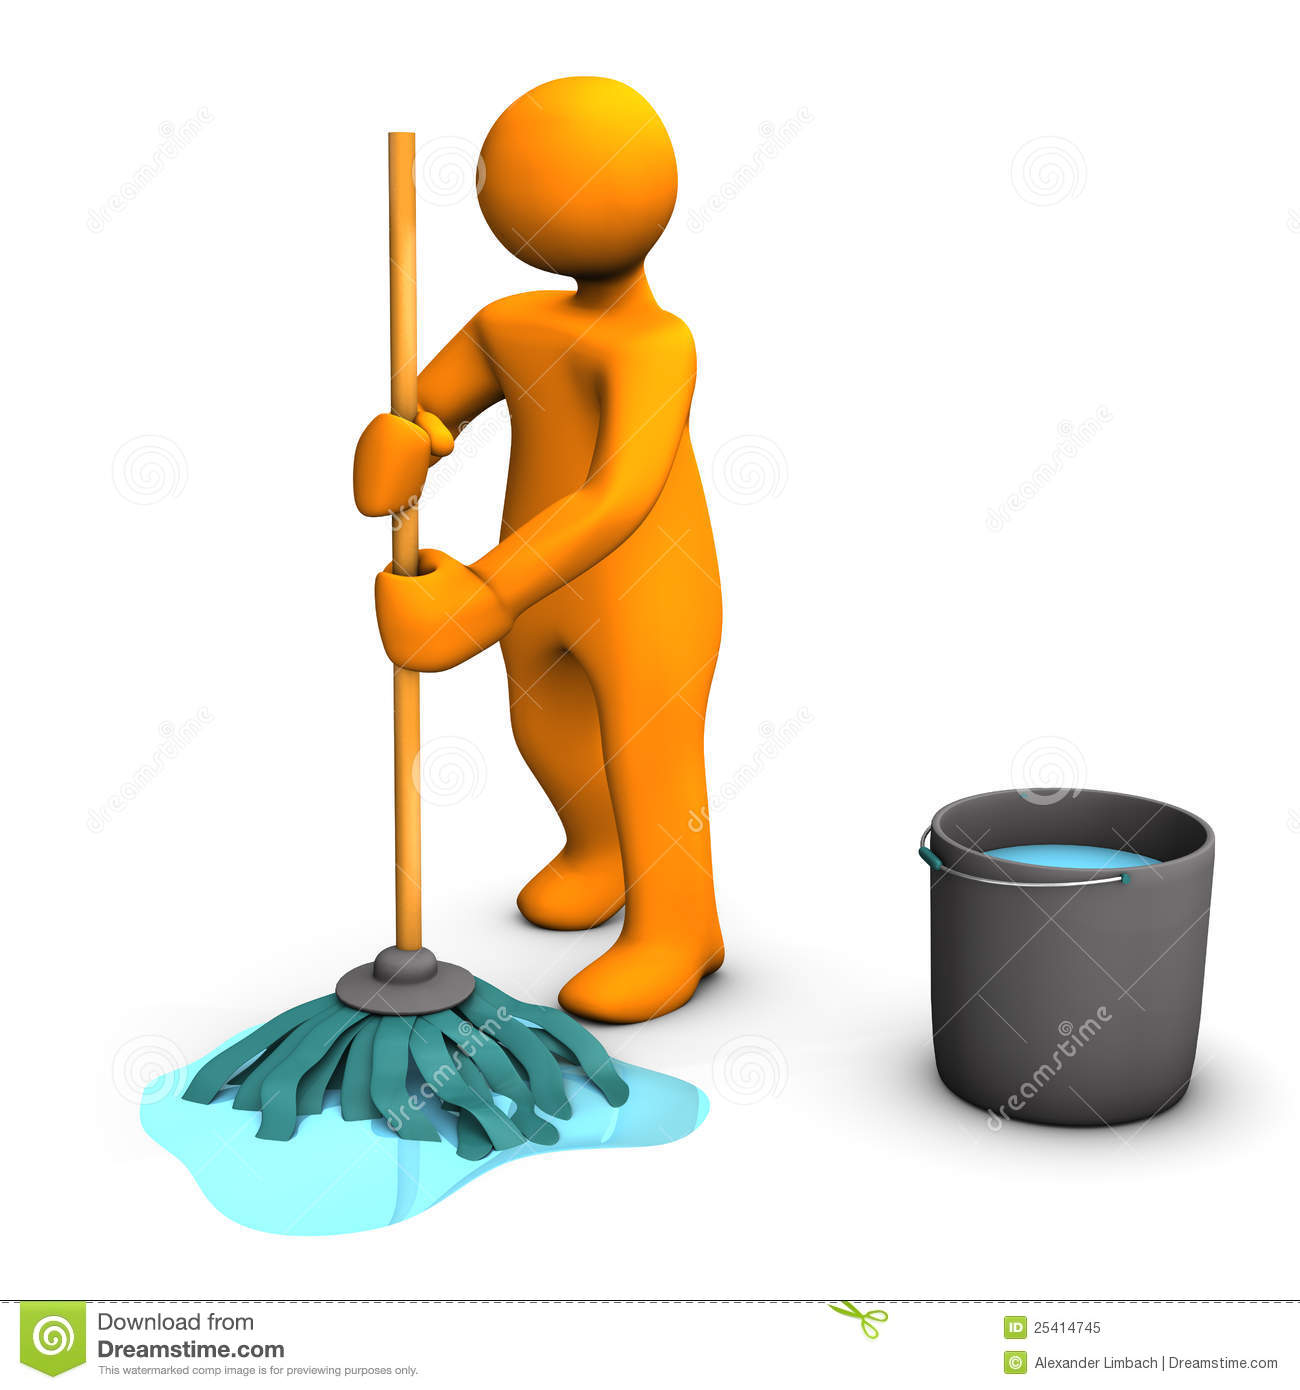 mopping floor person cleaning illustration 3d bucket royalty blank character face background preview dreamstime